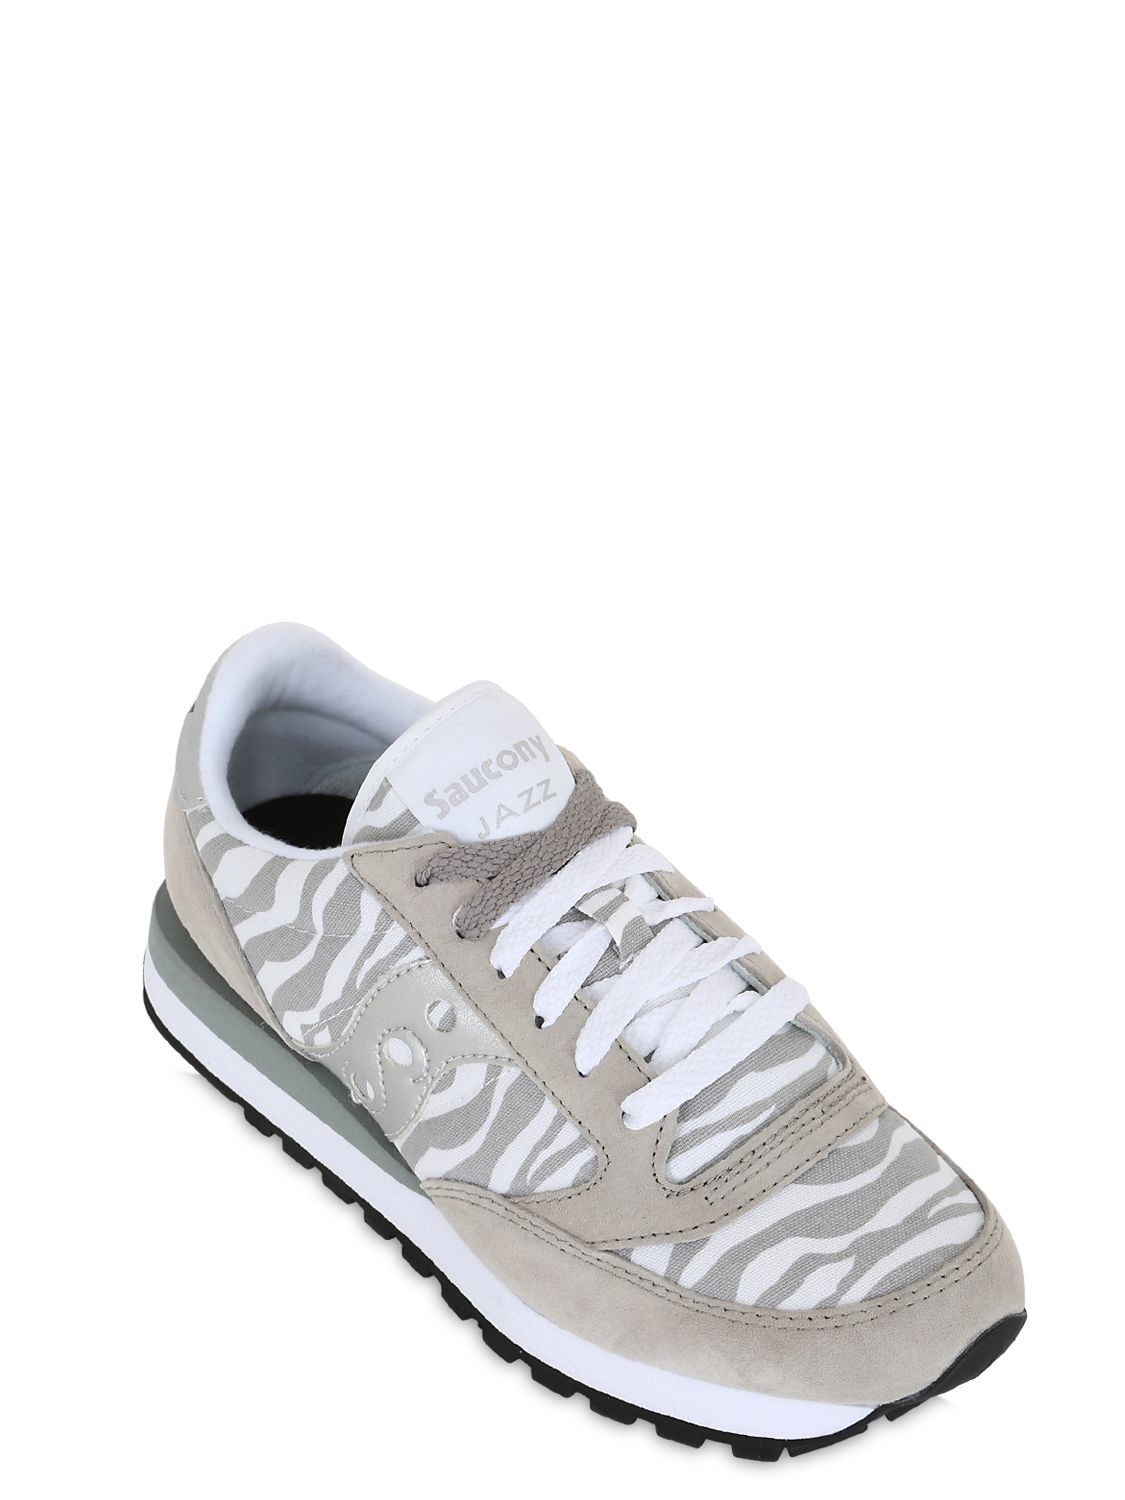 Saucony Jazz Safari Suede Limit.ed Sneakers in White/Grey (Grey)